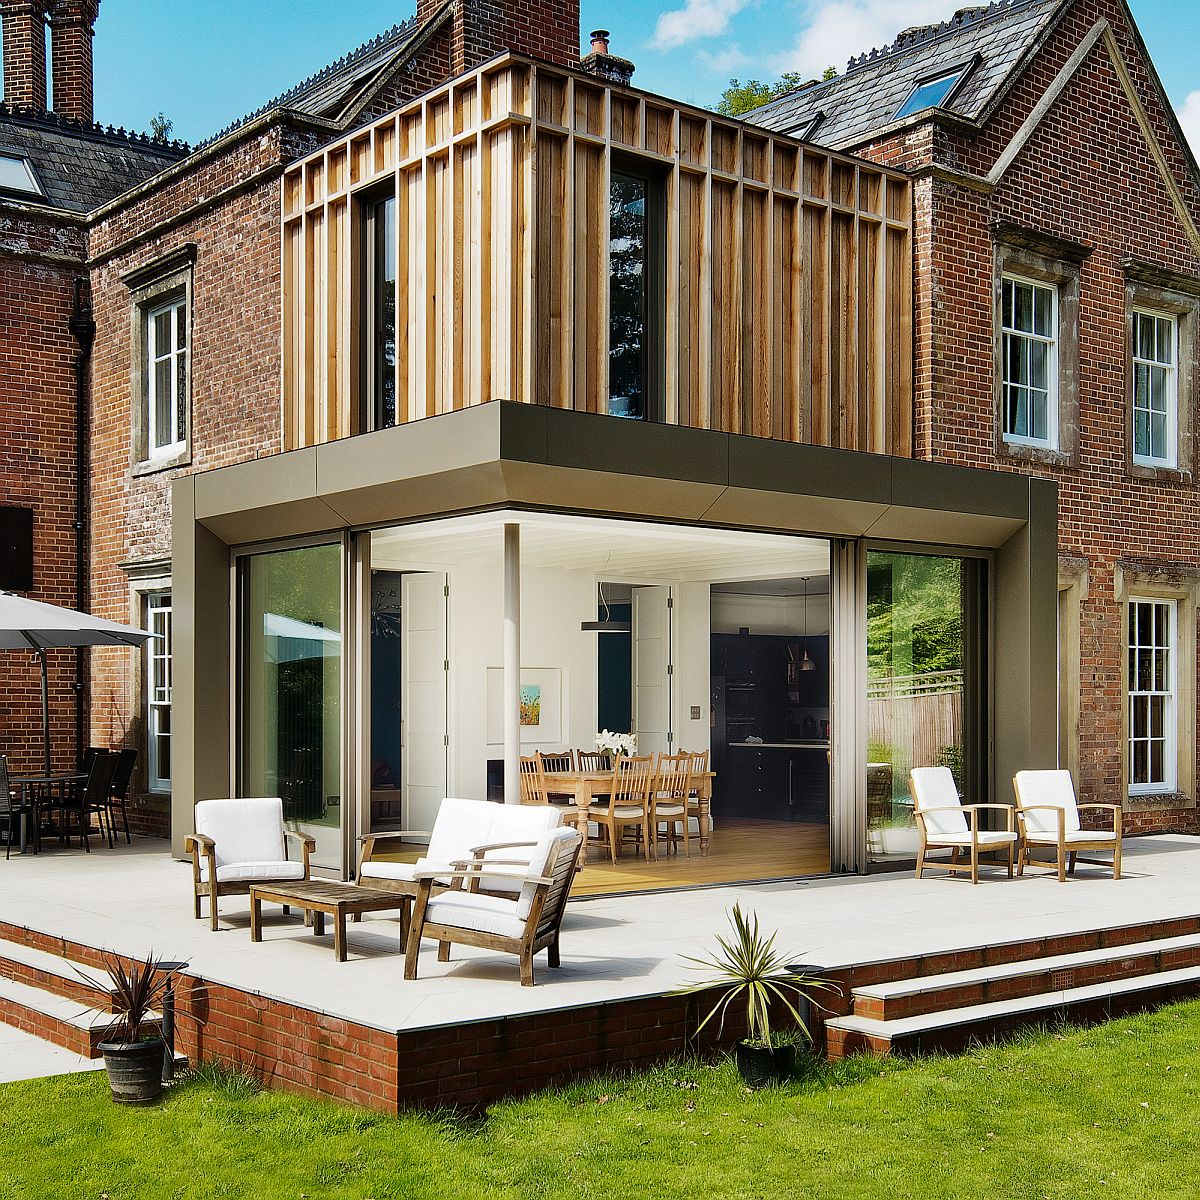 Delightful contemporary extension to historical family house with brick exterior